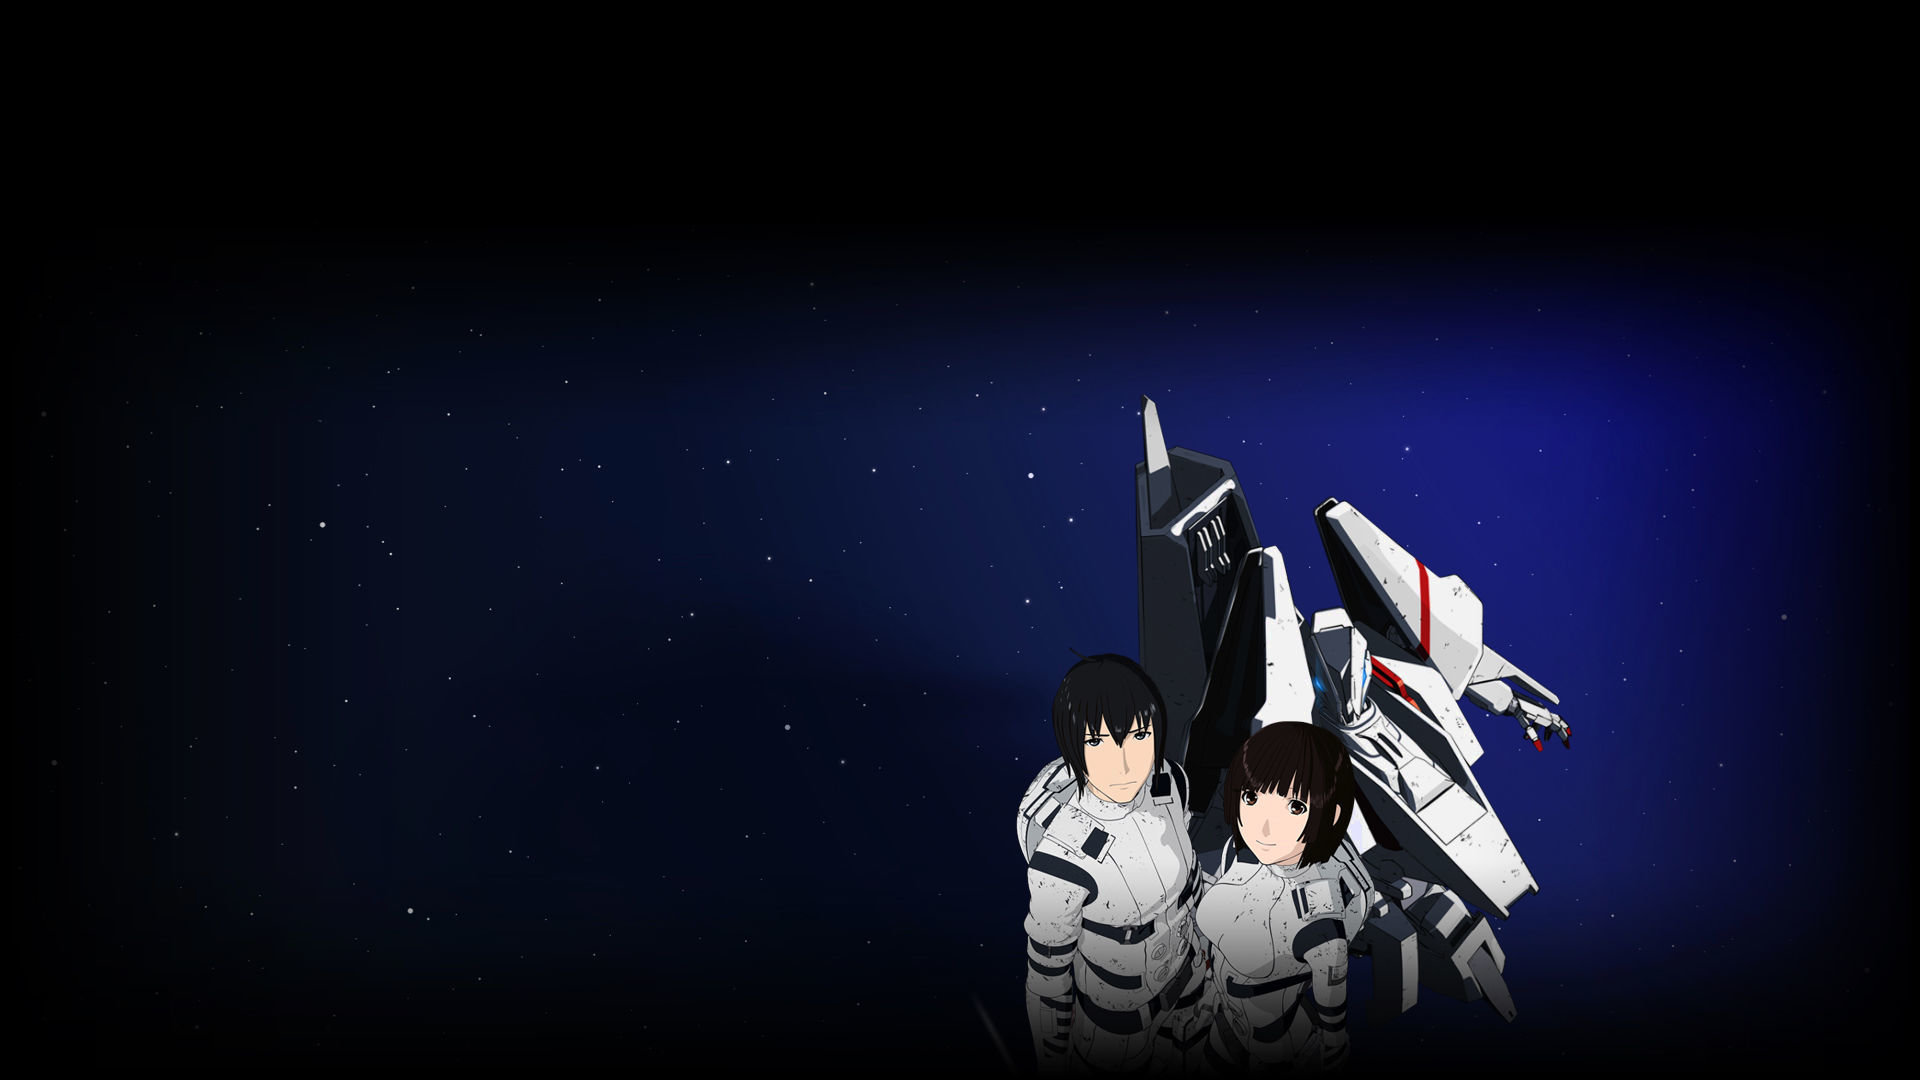 High resolution Knights Of Sidonia hd 1920x1080 background ID:294852 for desktop